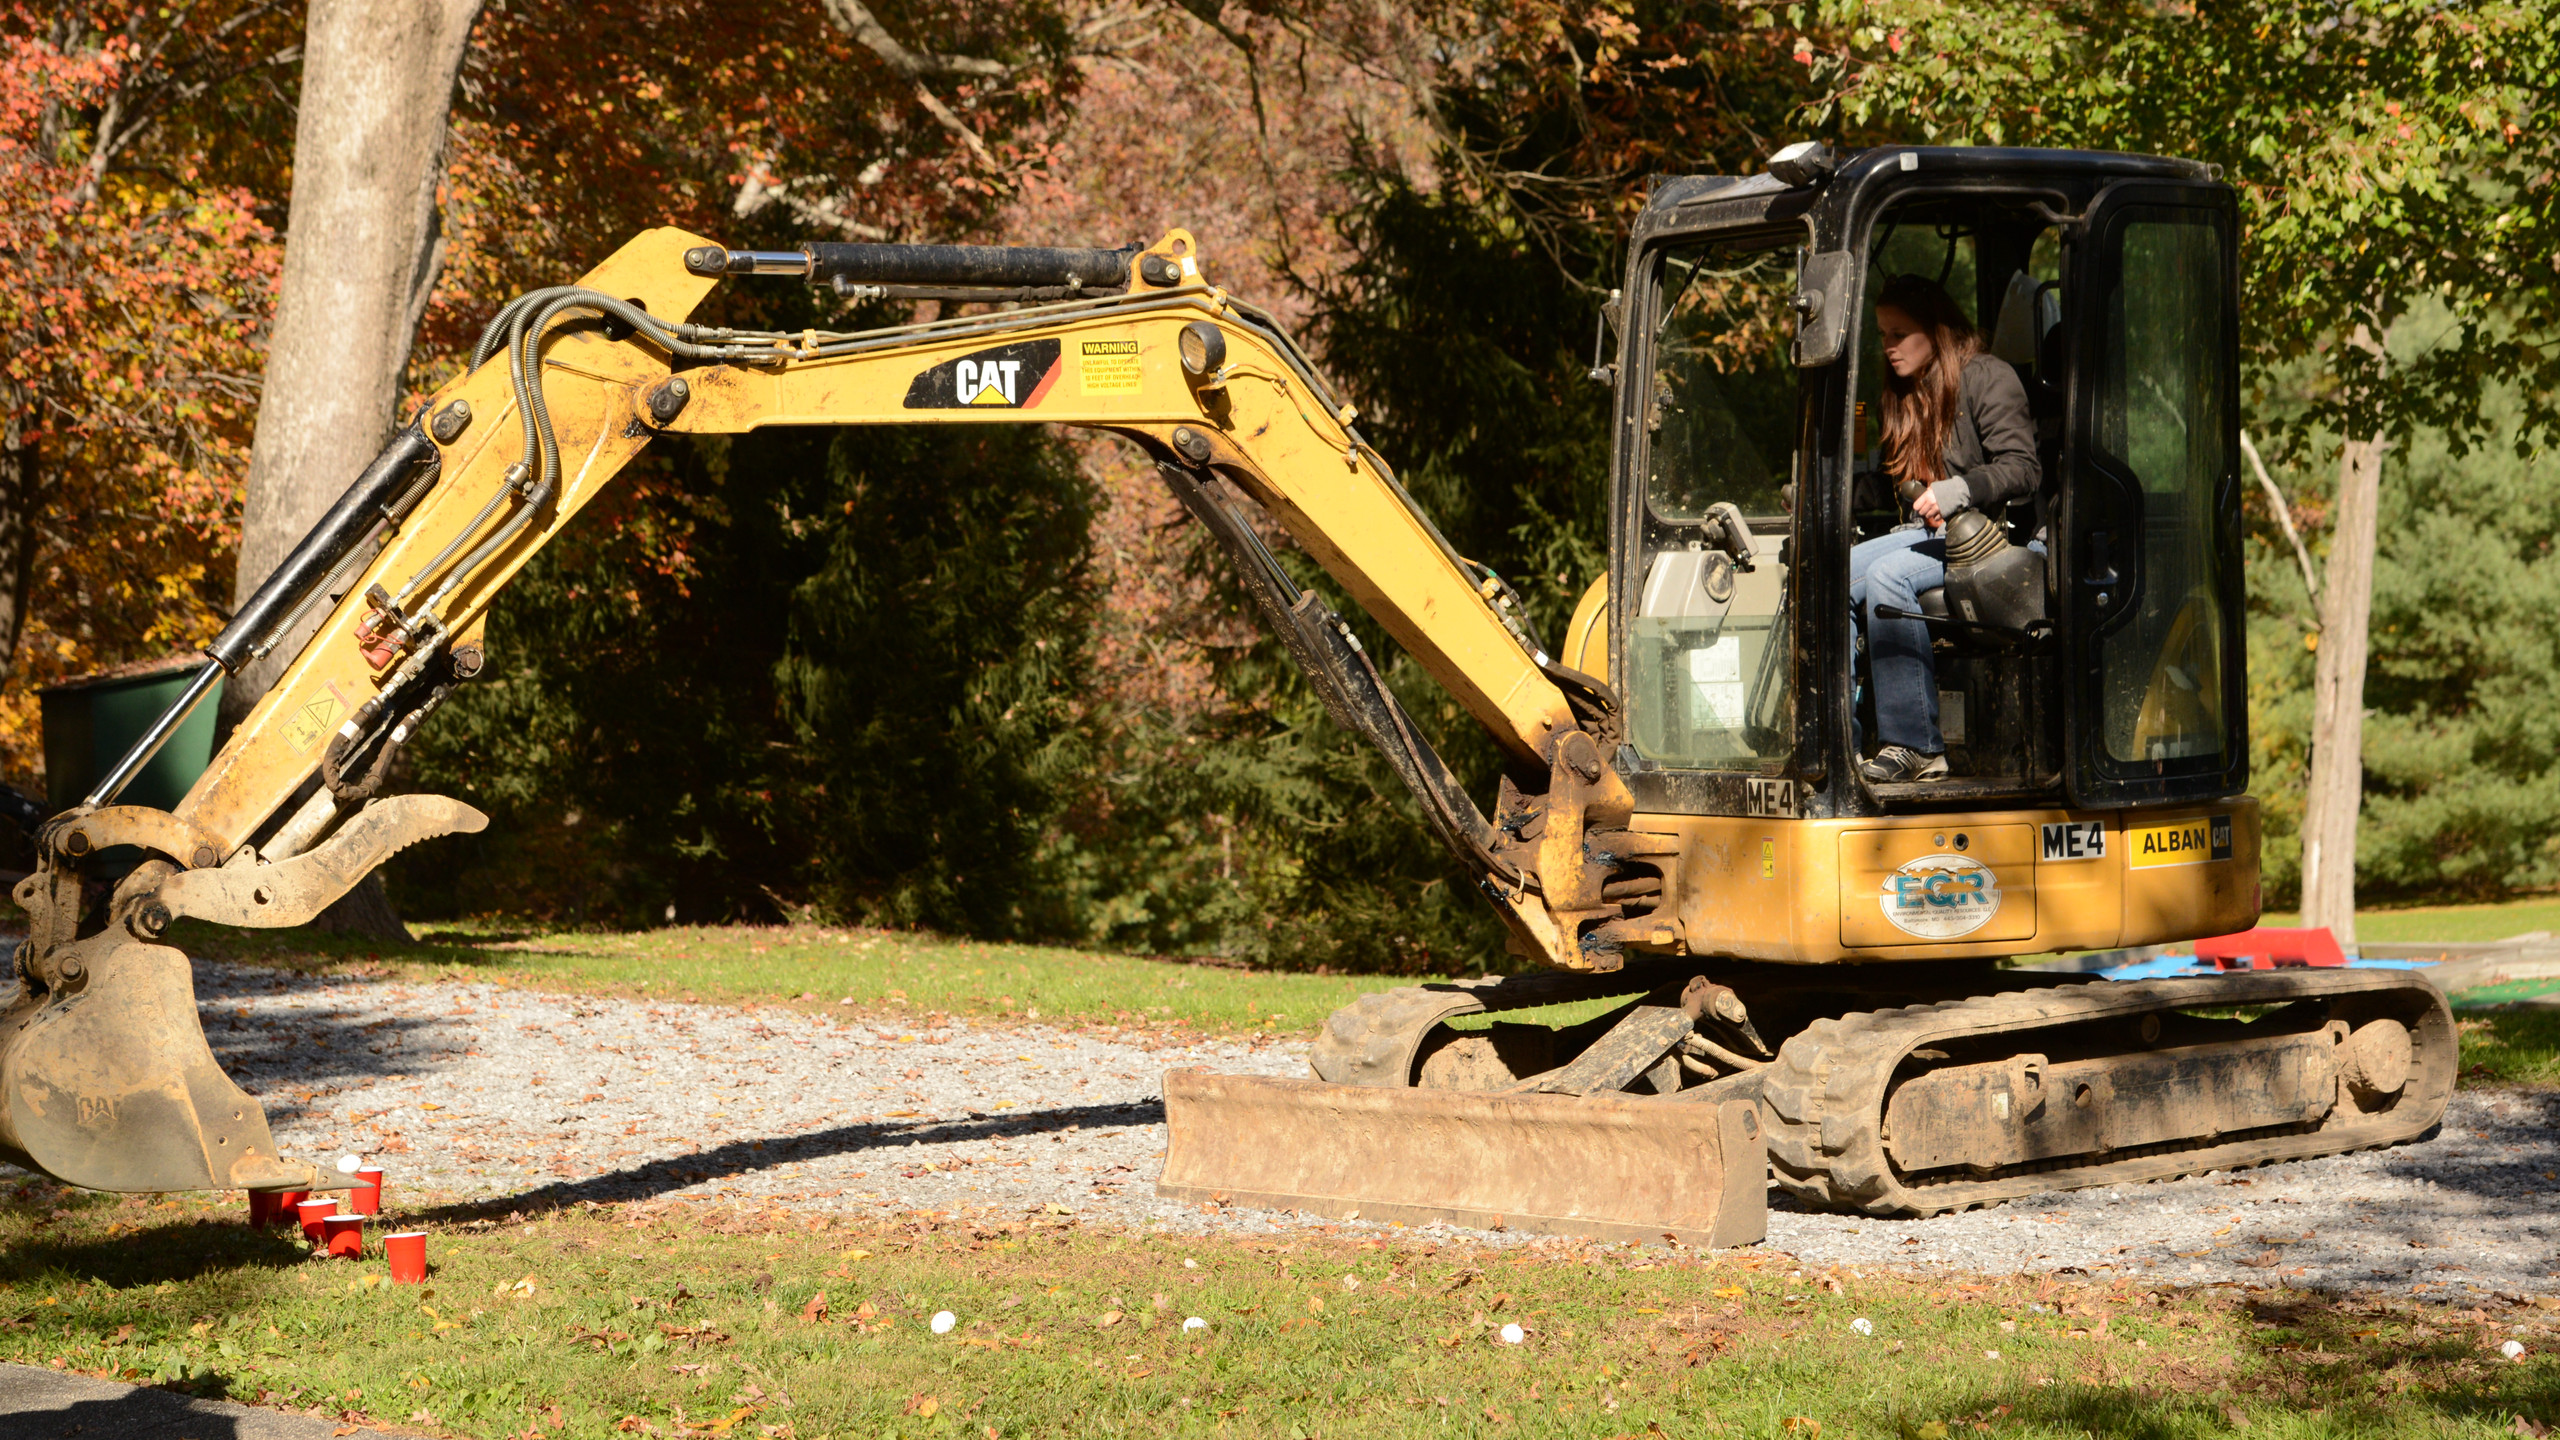 2014 Picnic! Karly is trying to put an egg in a cup using one of our excavators